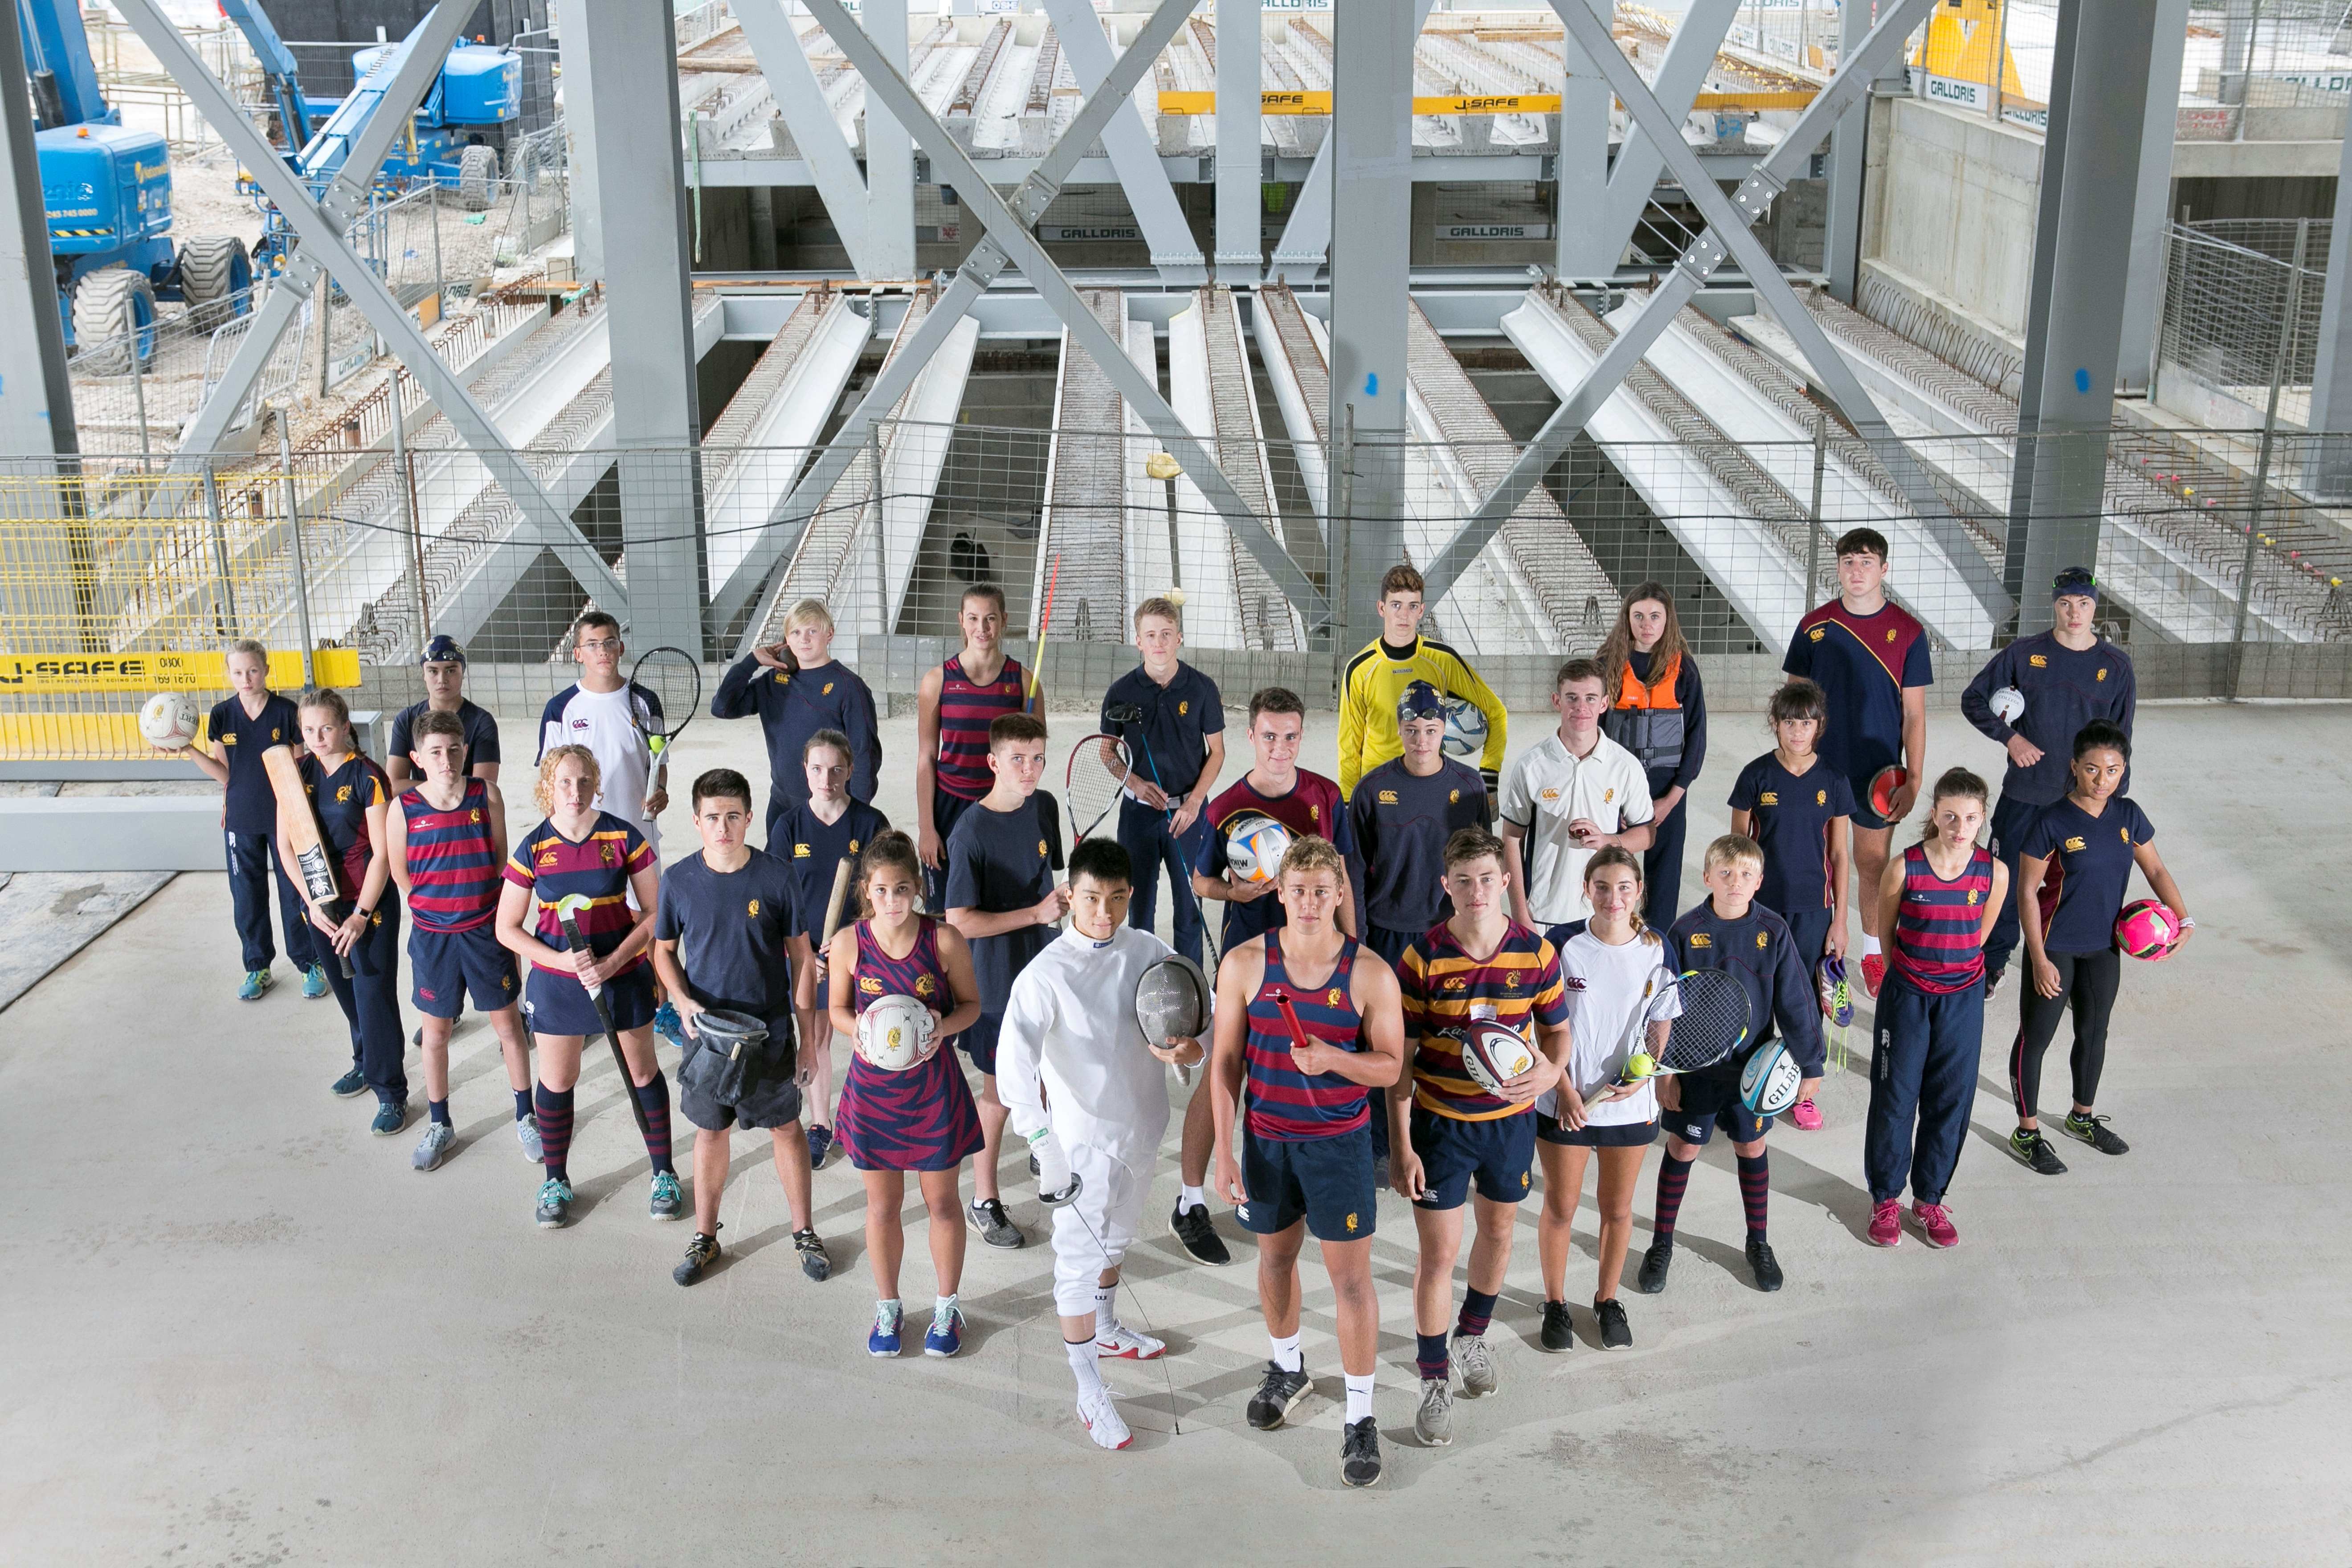 review photo shoot sports and science centre pupils building septemnber 2018.jpg